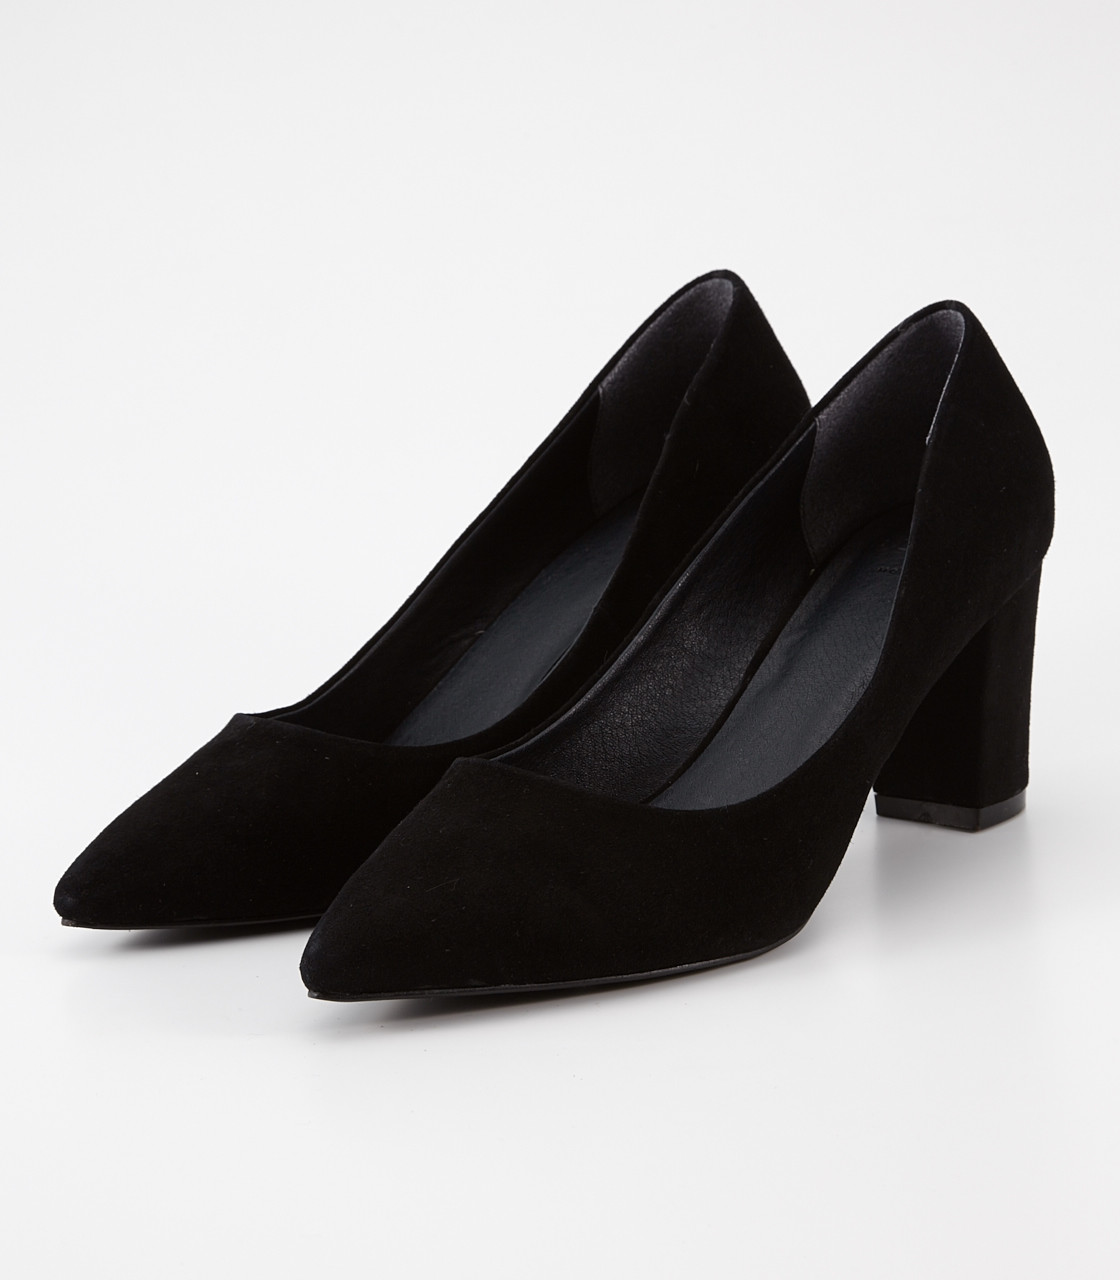 Pointed suede plane pumps